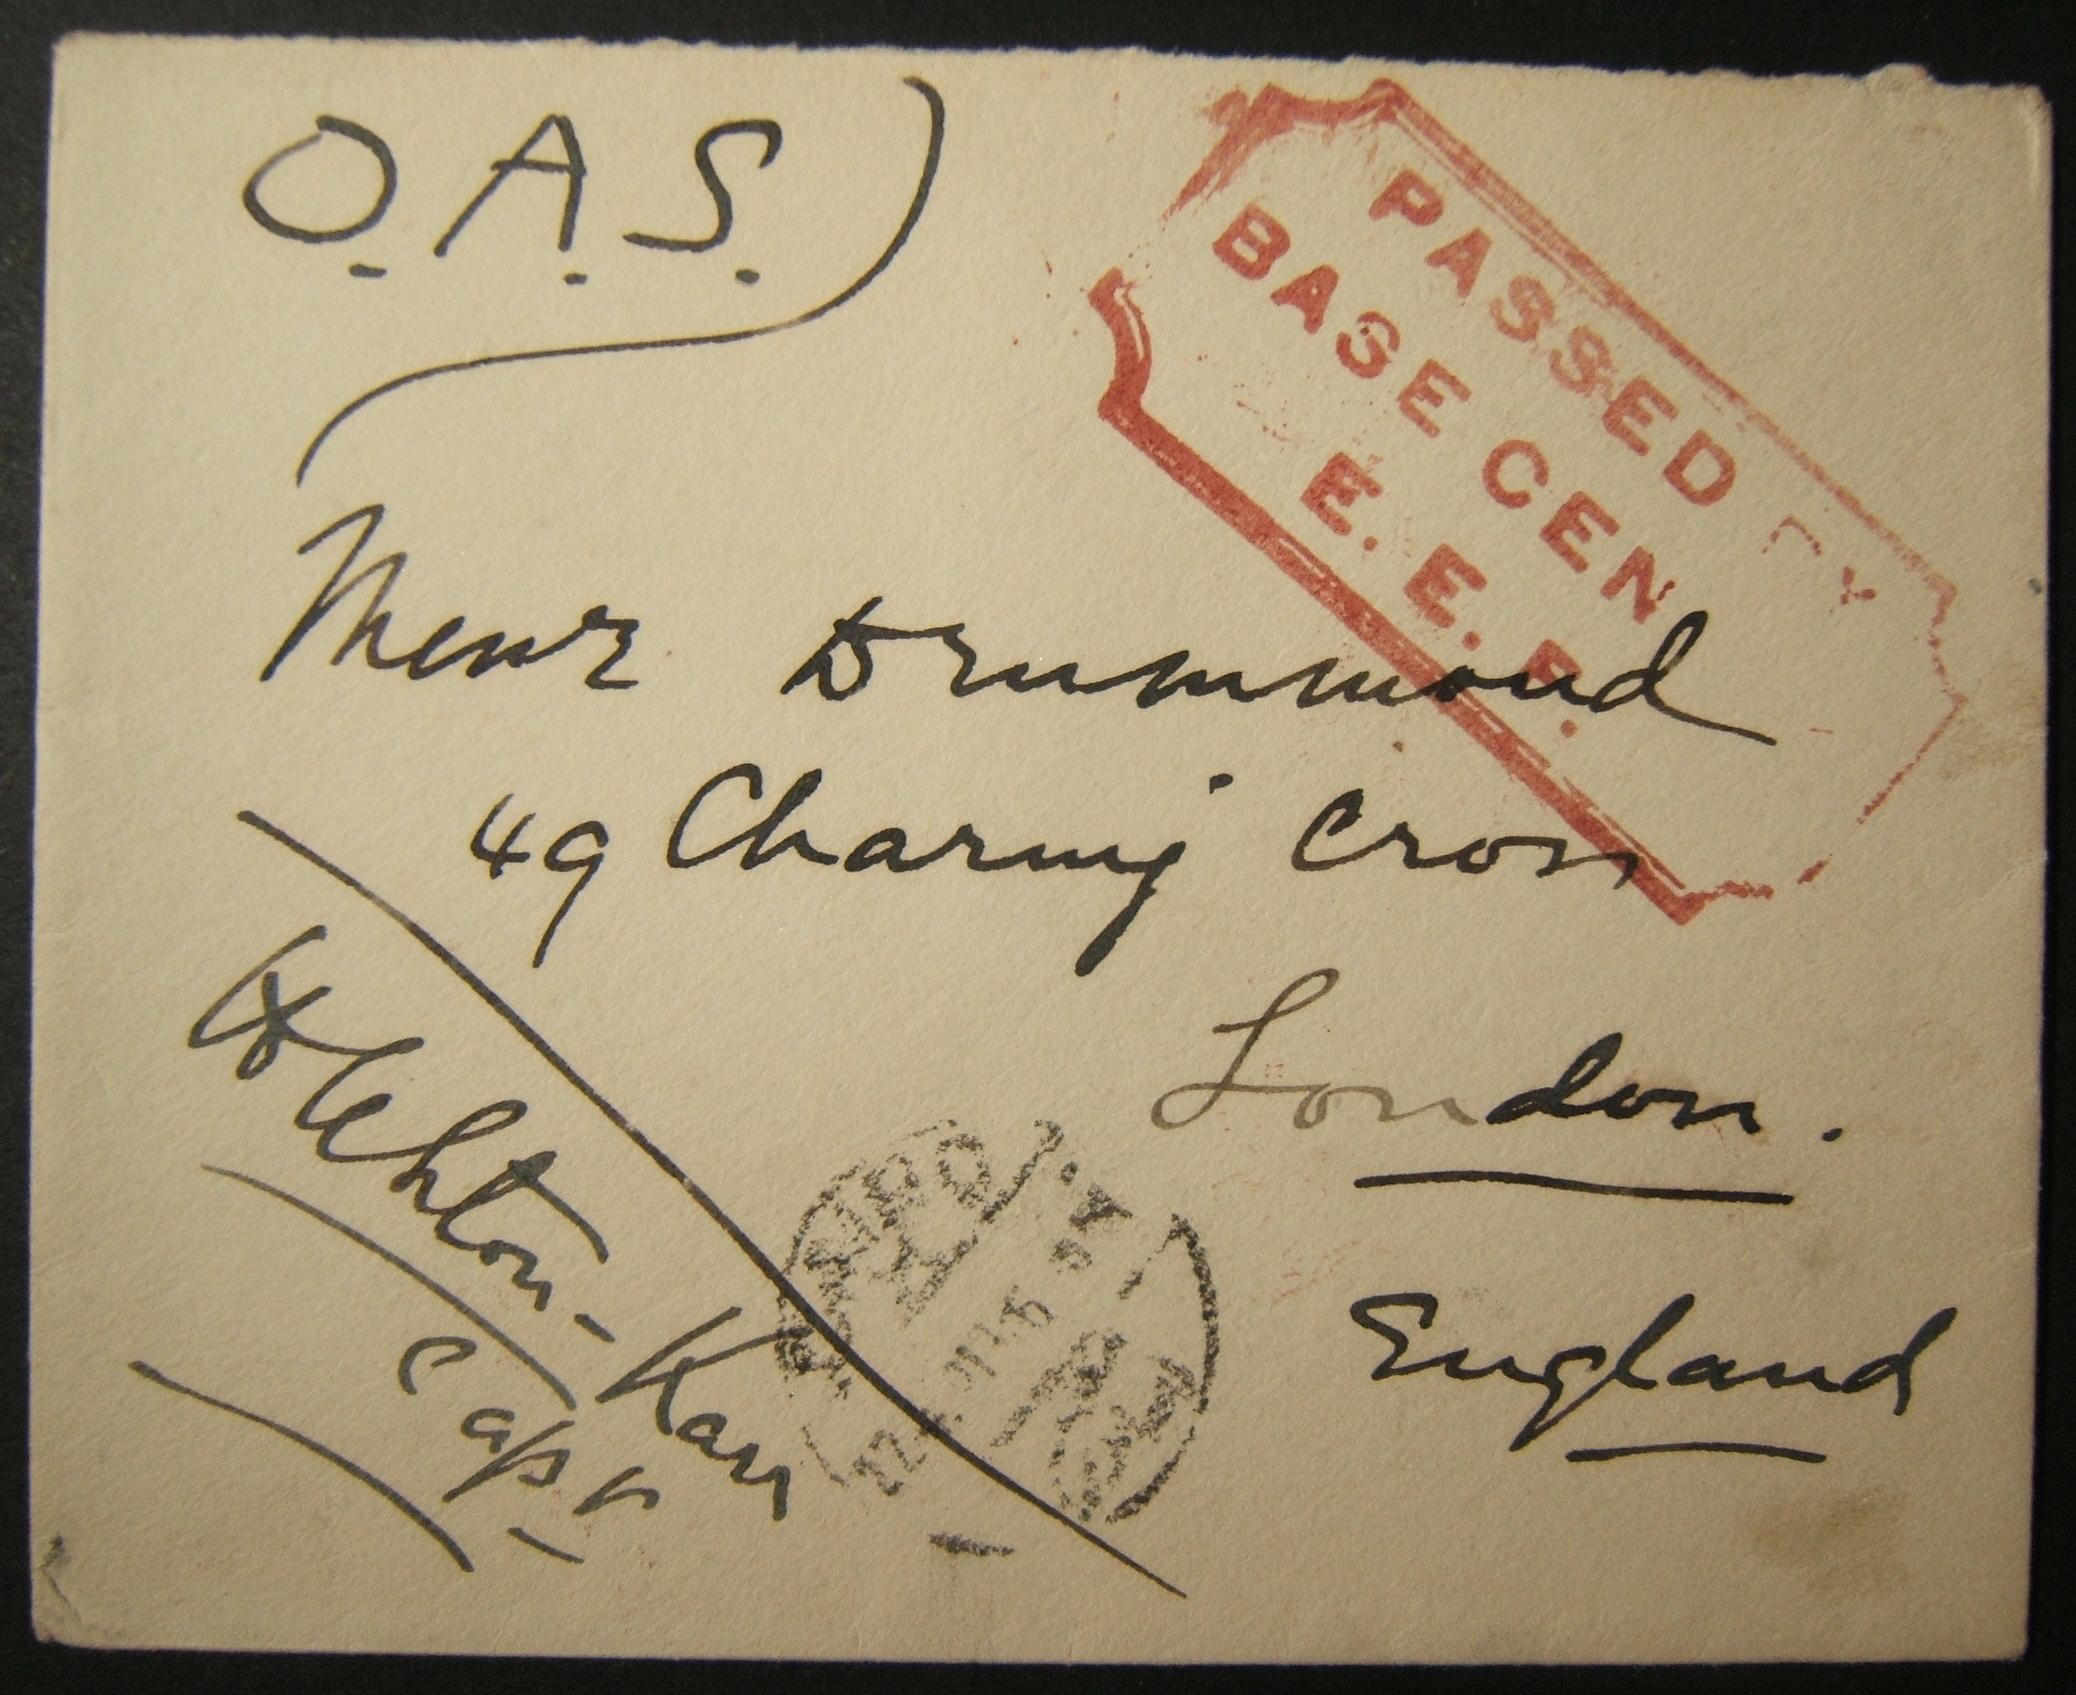 6/1918 WWI unfranked British military mail to UK via Egyptian post; latest dated postmark, unusual routing